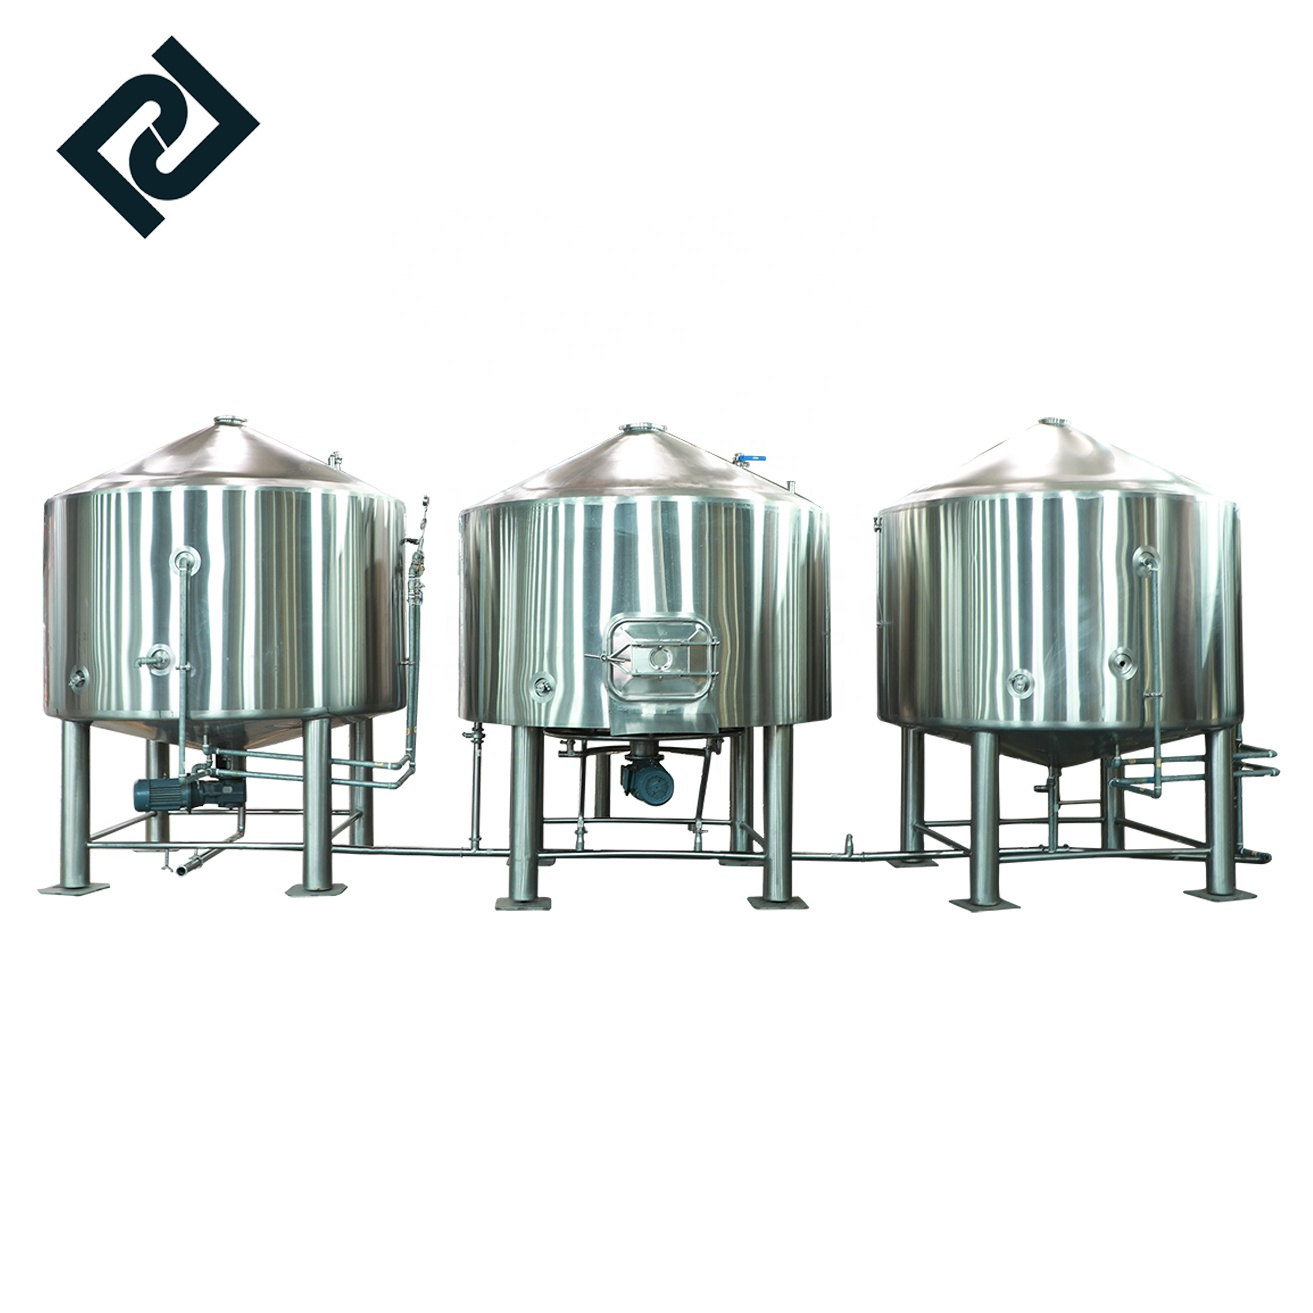 Manufacturer of Micro Brewery Equipment For Sale - 1bbll 2bbl 3bbl 5bbl beer machine home micro beer brewery equipment for sale – Pijiang